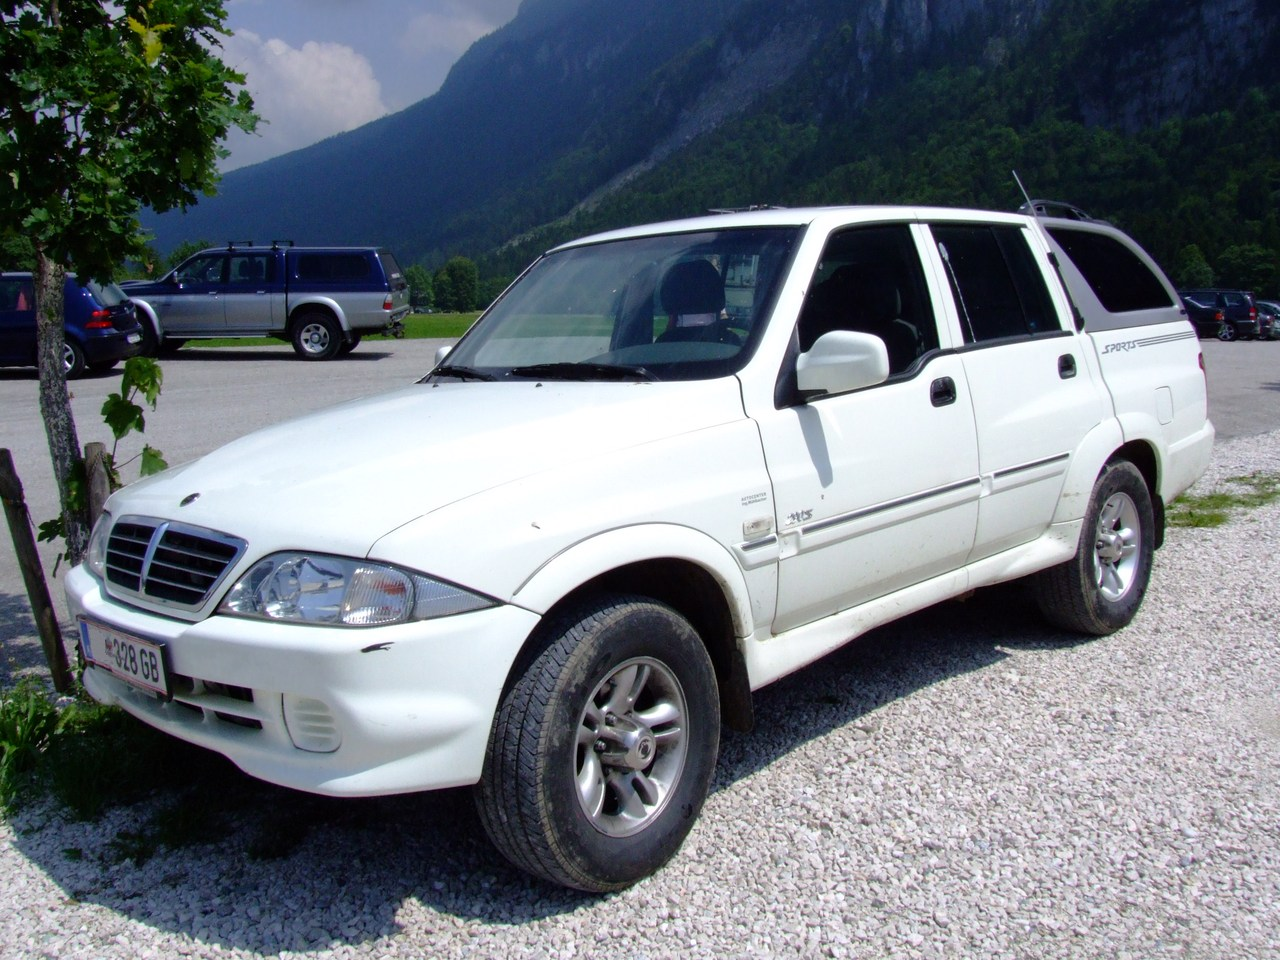 """The SsangYong Musso is a mid-size sport utility vehicle (SUV) manufactured by the South Korean automaker SsangYong Motor from 1993 to 2005. """"Musso"""" means rhinoceros in Korean. (image: Wikipedia)"""